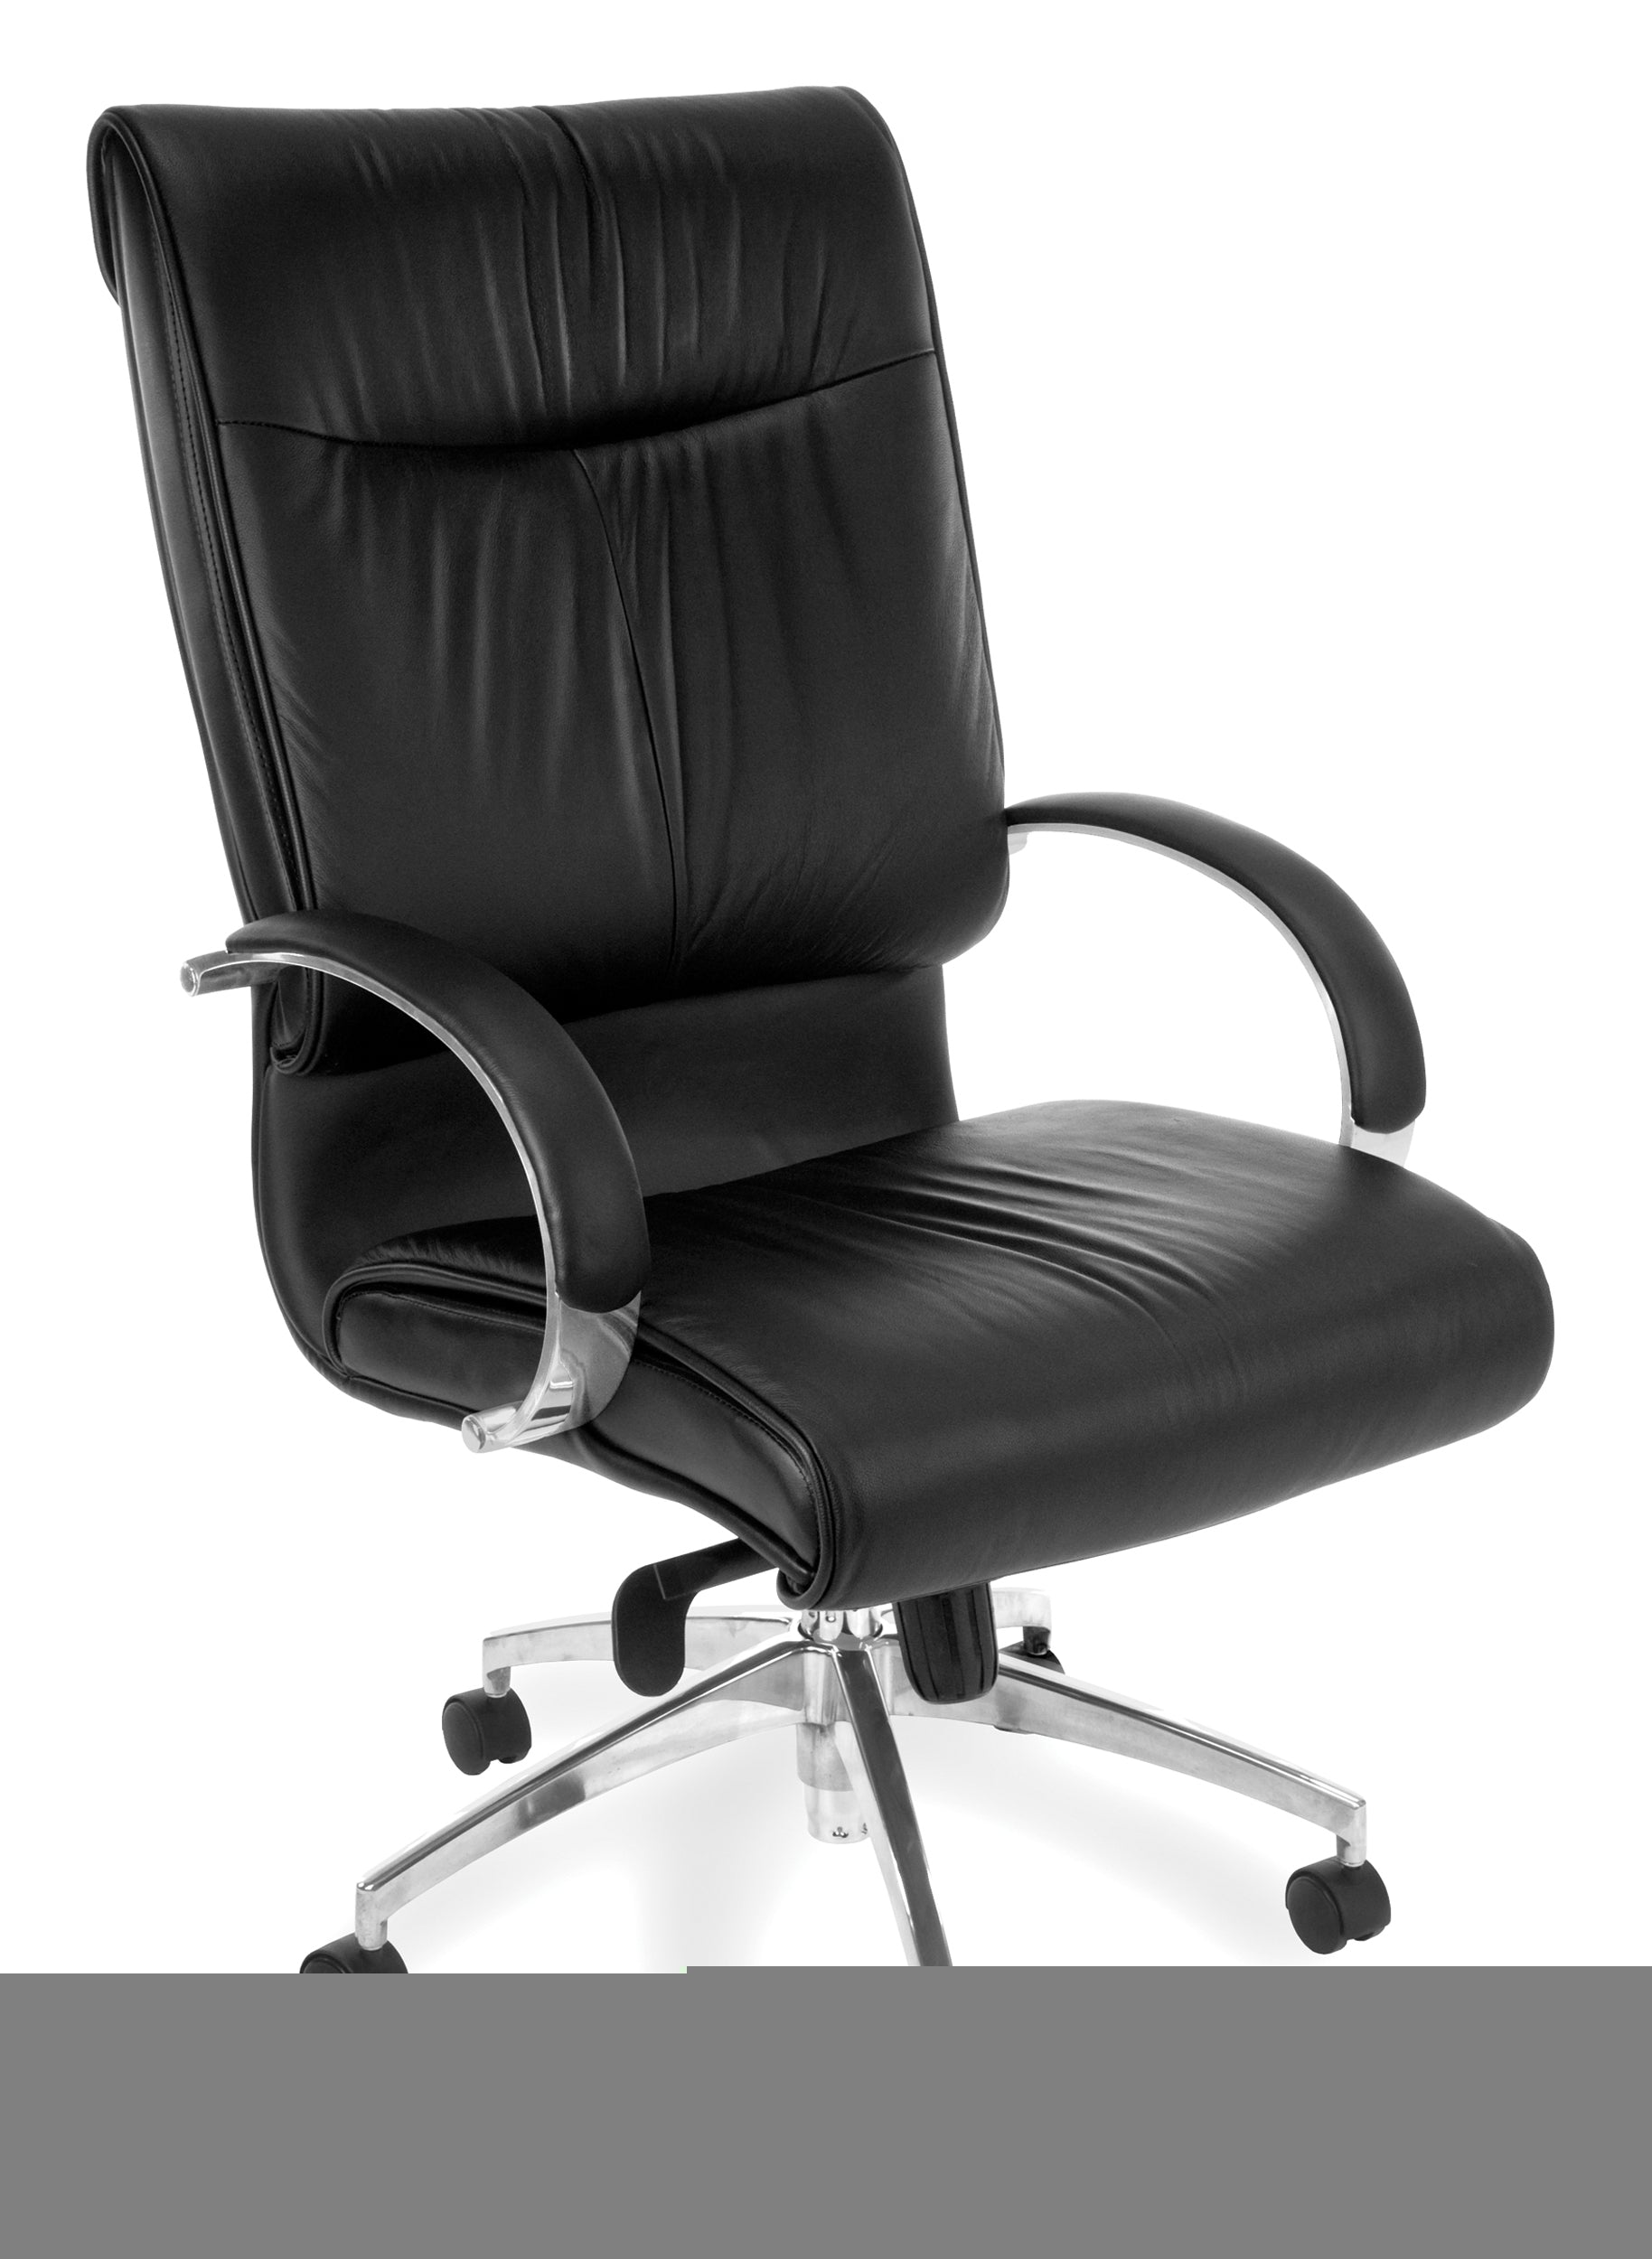 510-L Sharp Series Leather High-Back Executive Chair with Knee Tilt